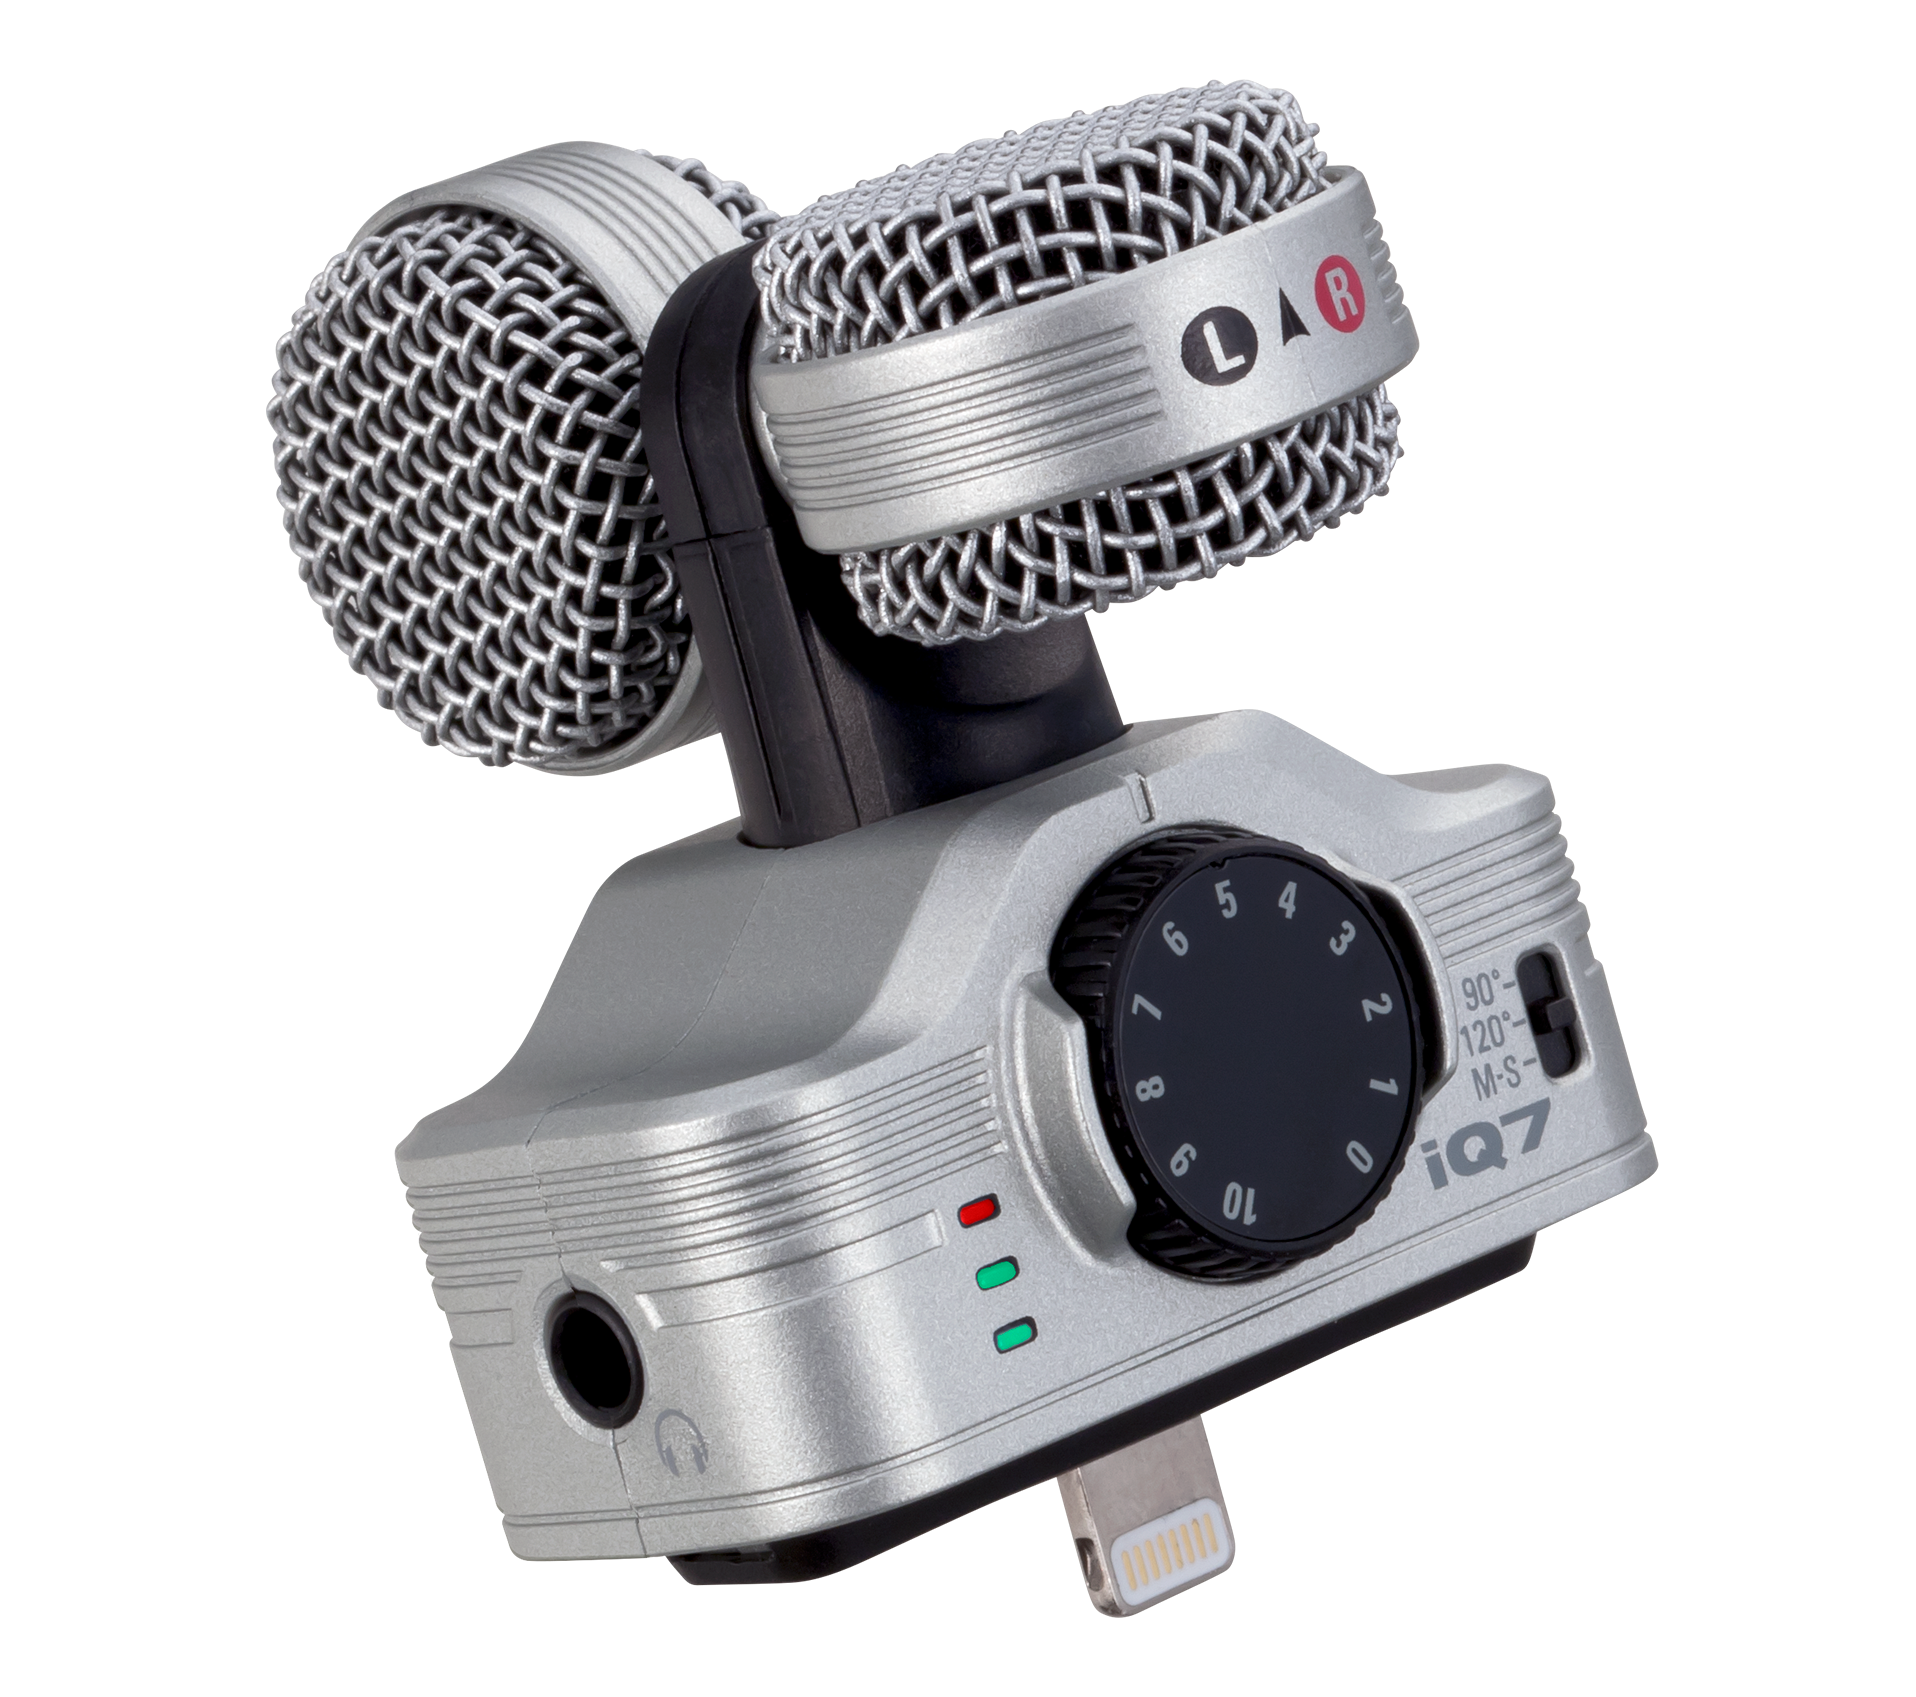 Iq7 Ms Stereo Microphone For Ios Zoom